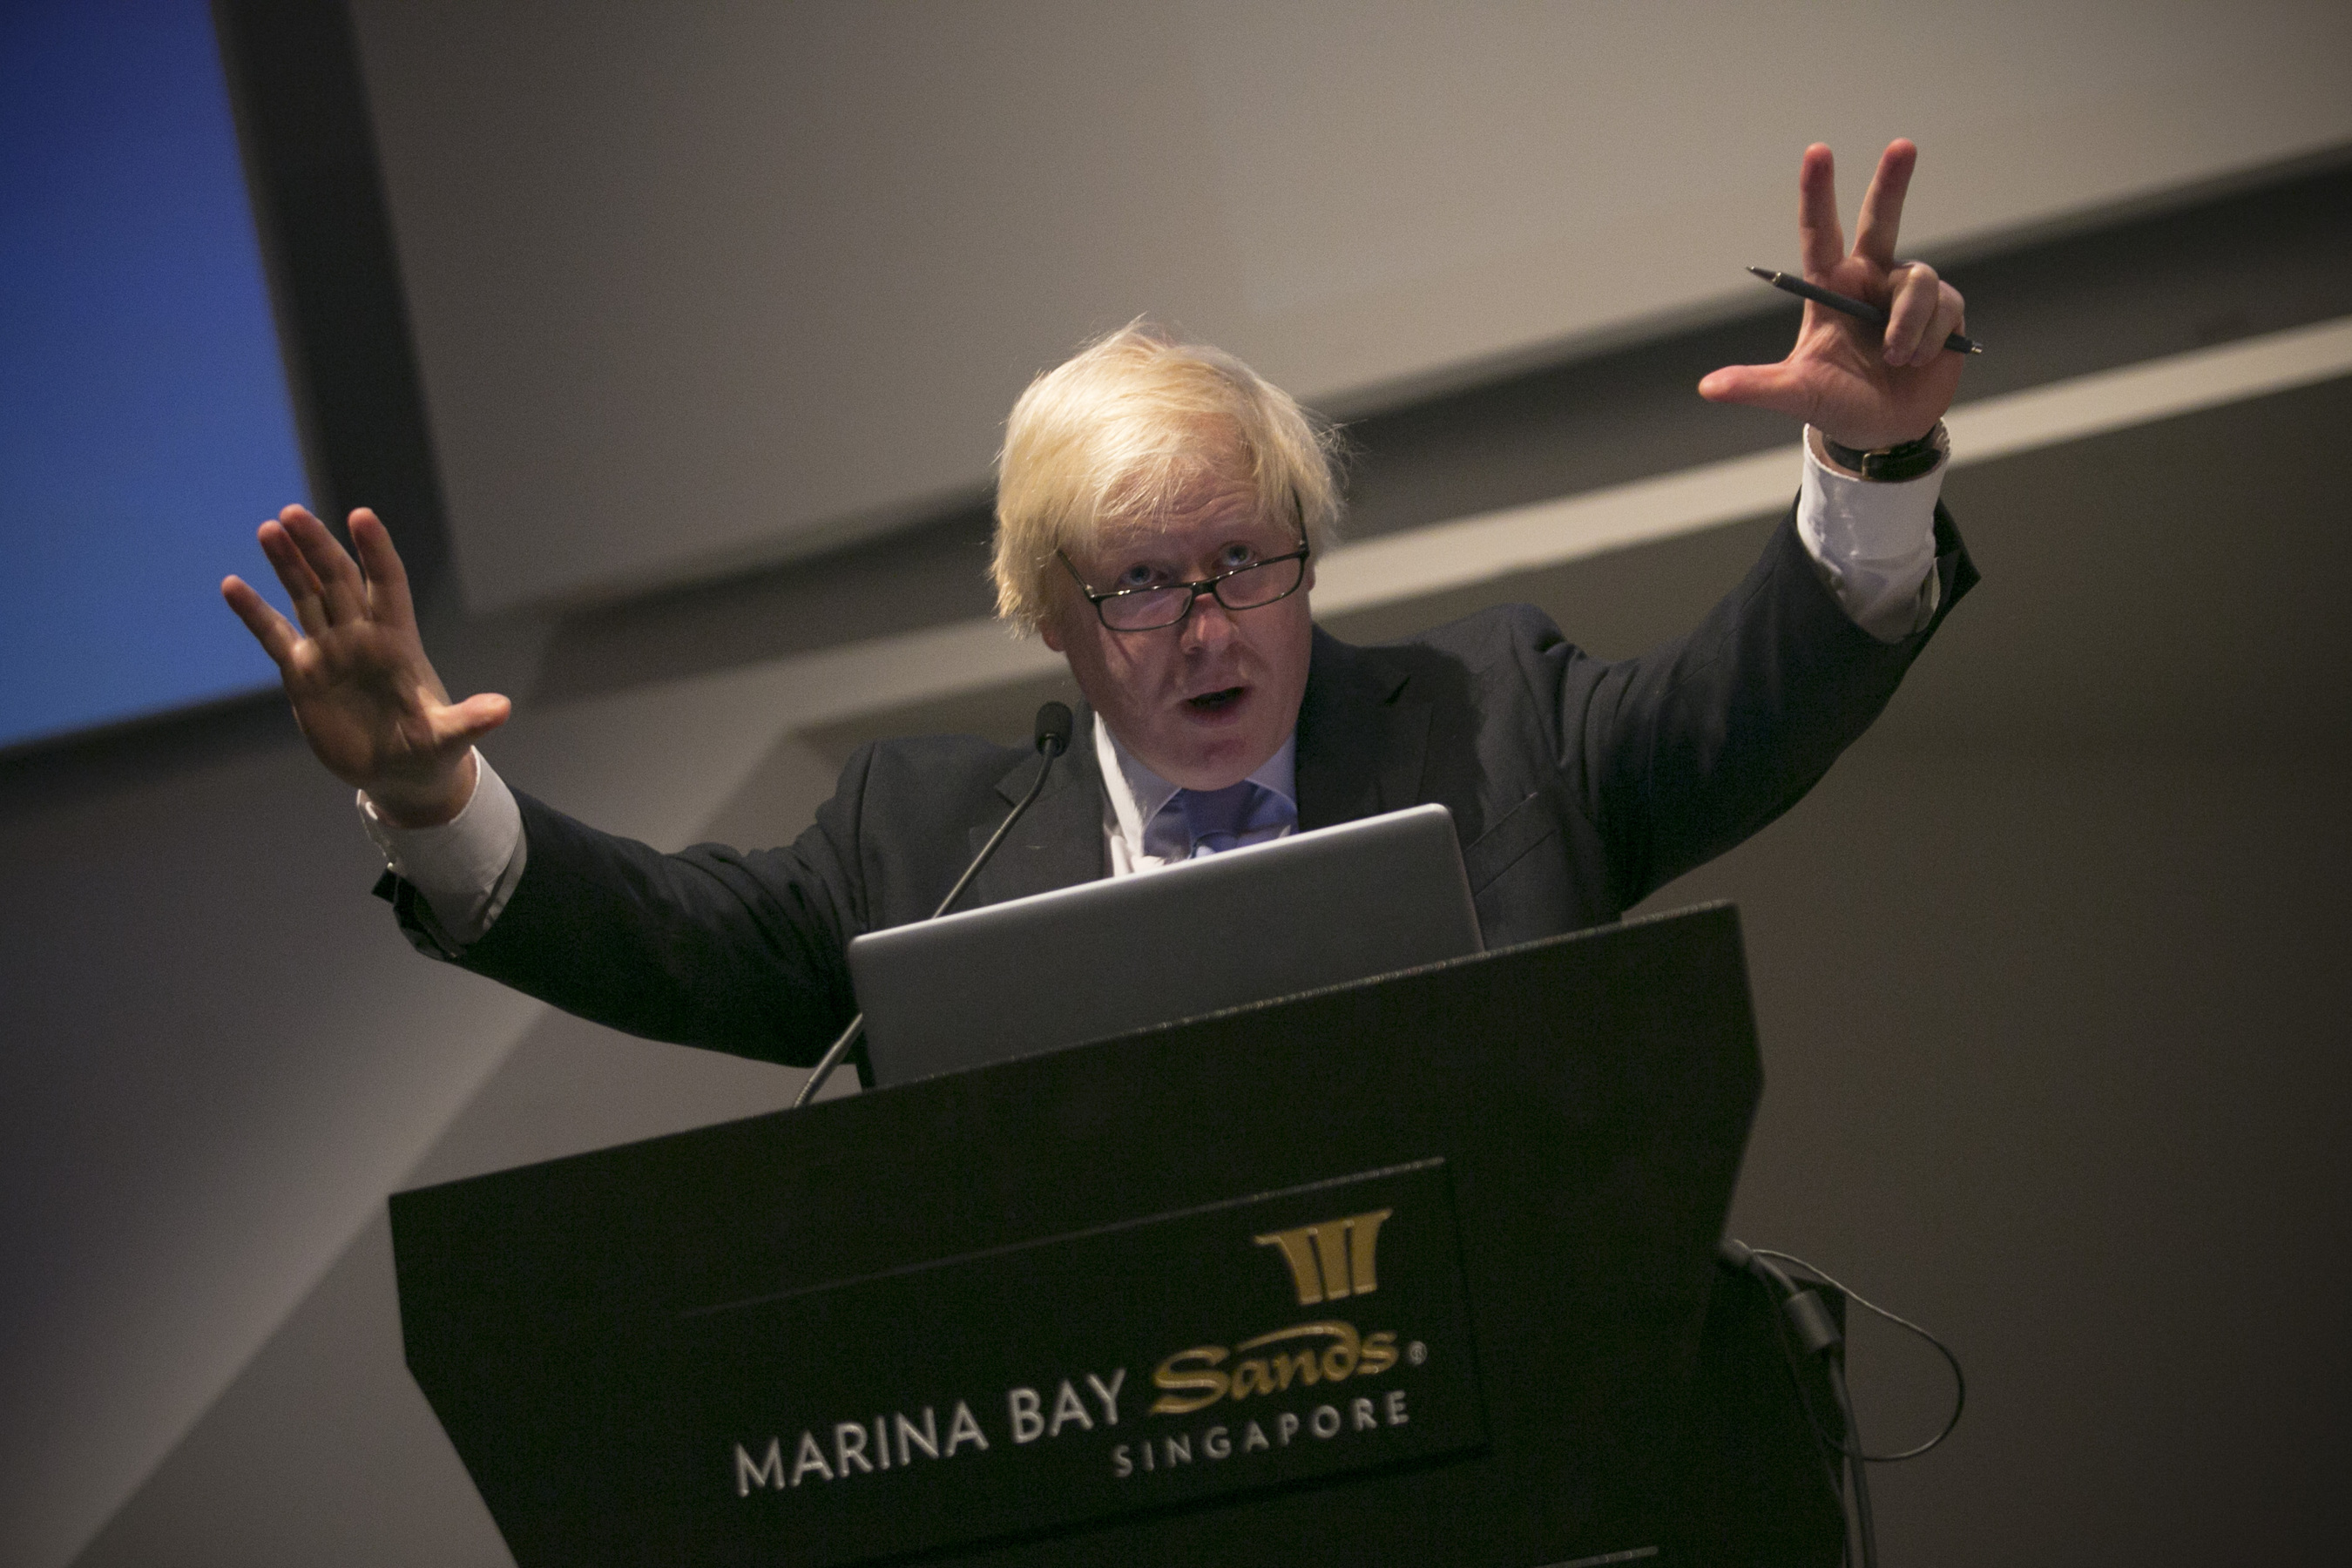 """The Mayor of London, Boris Johnson, is pictured at the ArtScience Museum in Singapore where he revealed new figures compiled by London & Partners that show record venture capital investment into London-based FinTech firms. So far this year companies have attracted more than US$539 million âeuro"""" triple the amount raised in 2013 âeuro"""" and an amount representing more than half of all FinTech investment across Europe. The Mayor is on a six day trade mission to the Far East where he is aiming to build on his work to create jobs and growth, and promote London to the world as a major investment destination as he leads a trade mission to Singapore, Jakarta and Kuala Lumpur. (PRNewsFoto/London _ Partners)"""